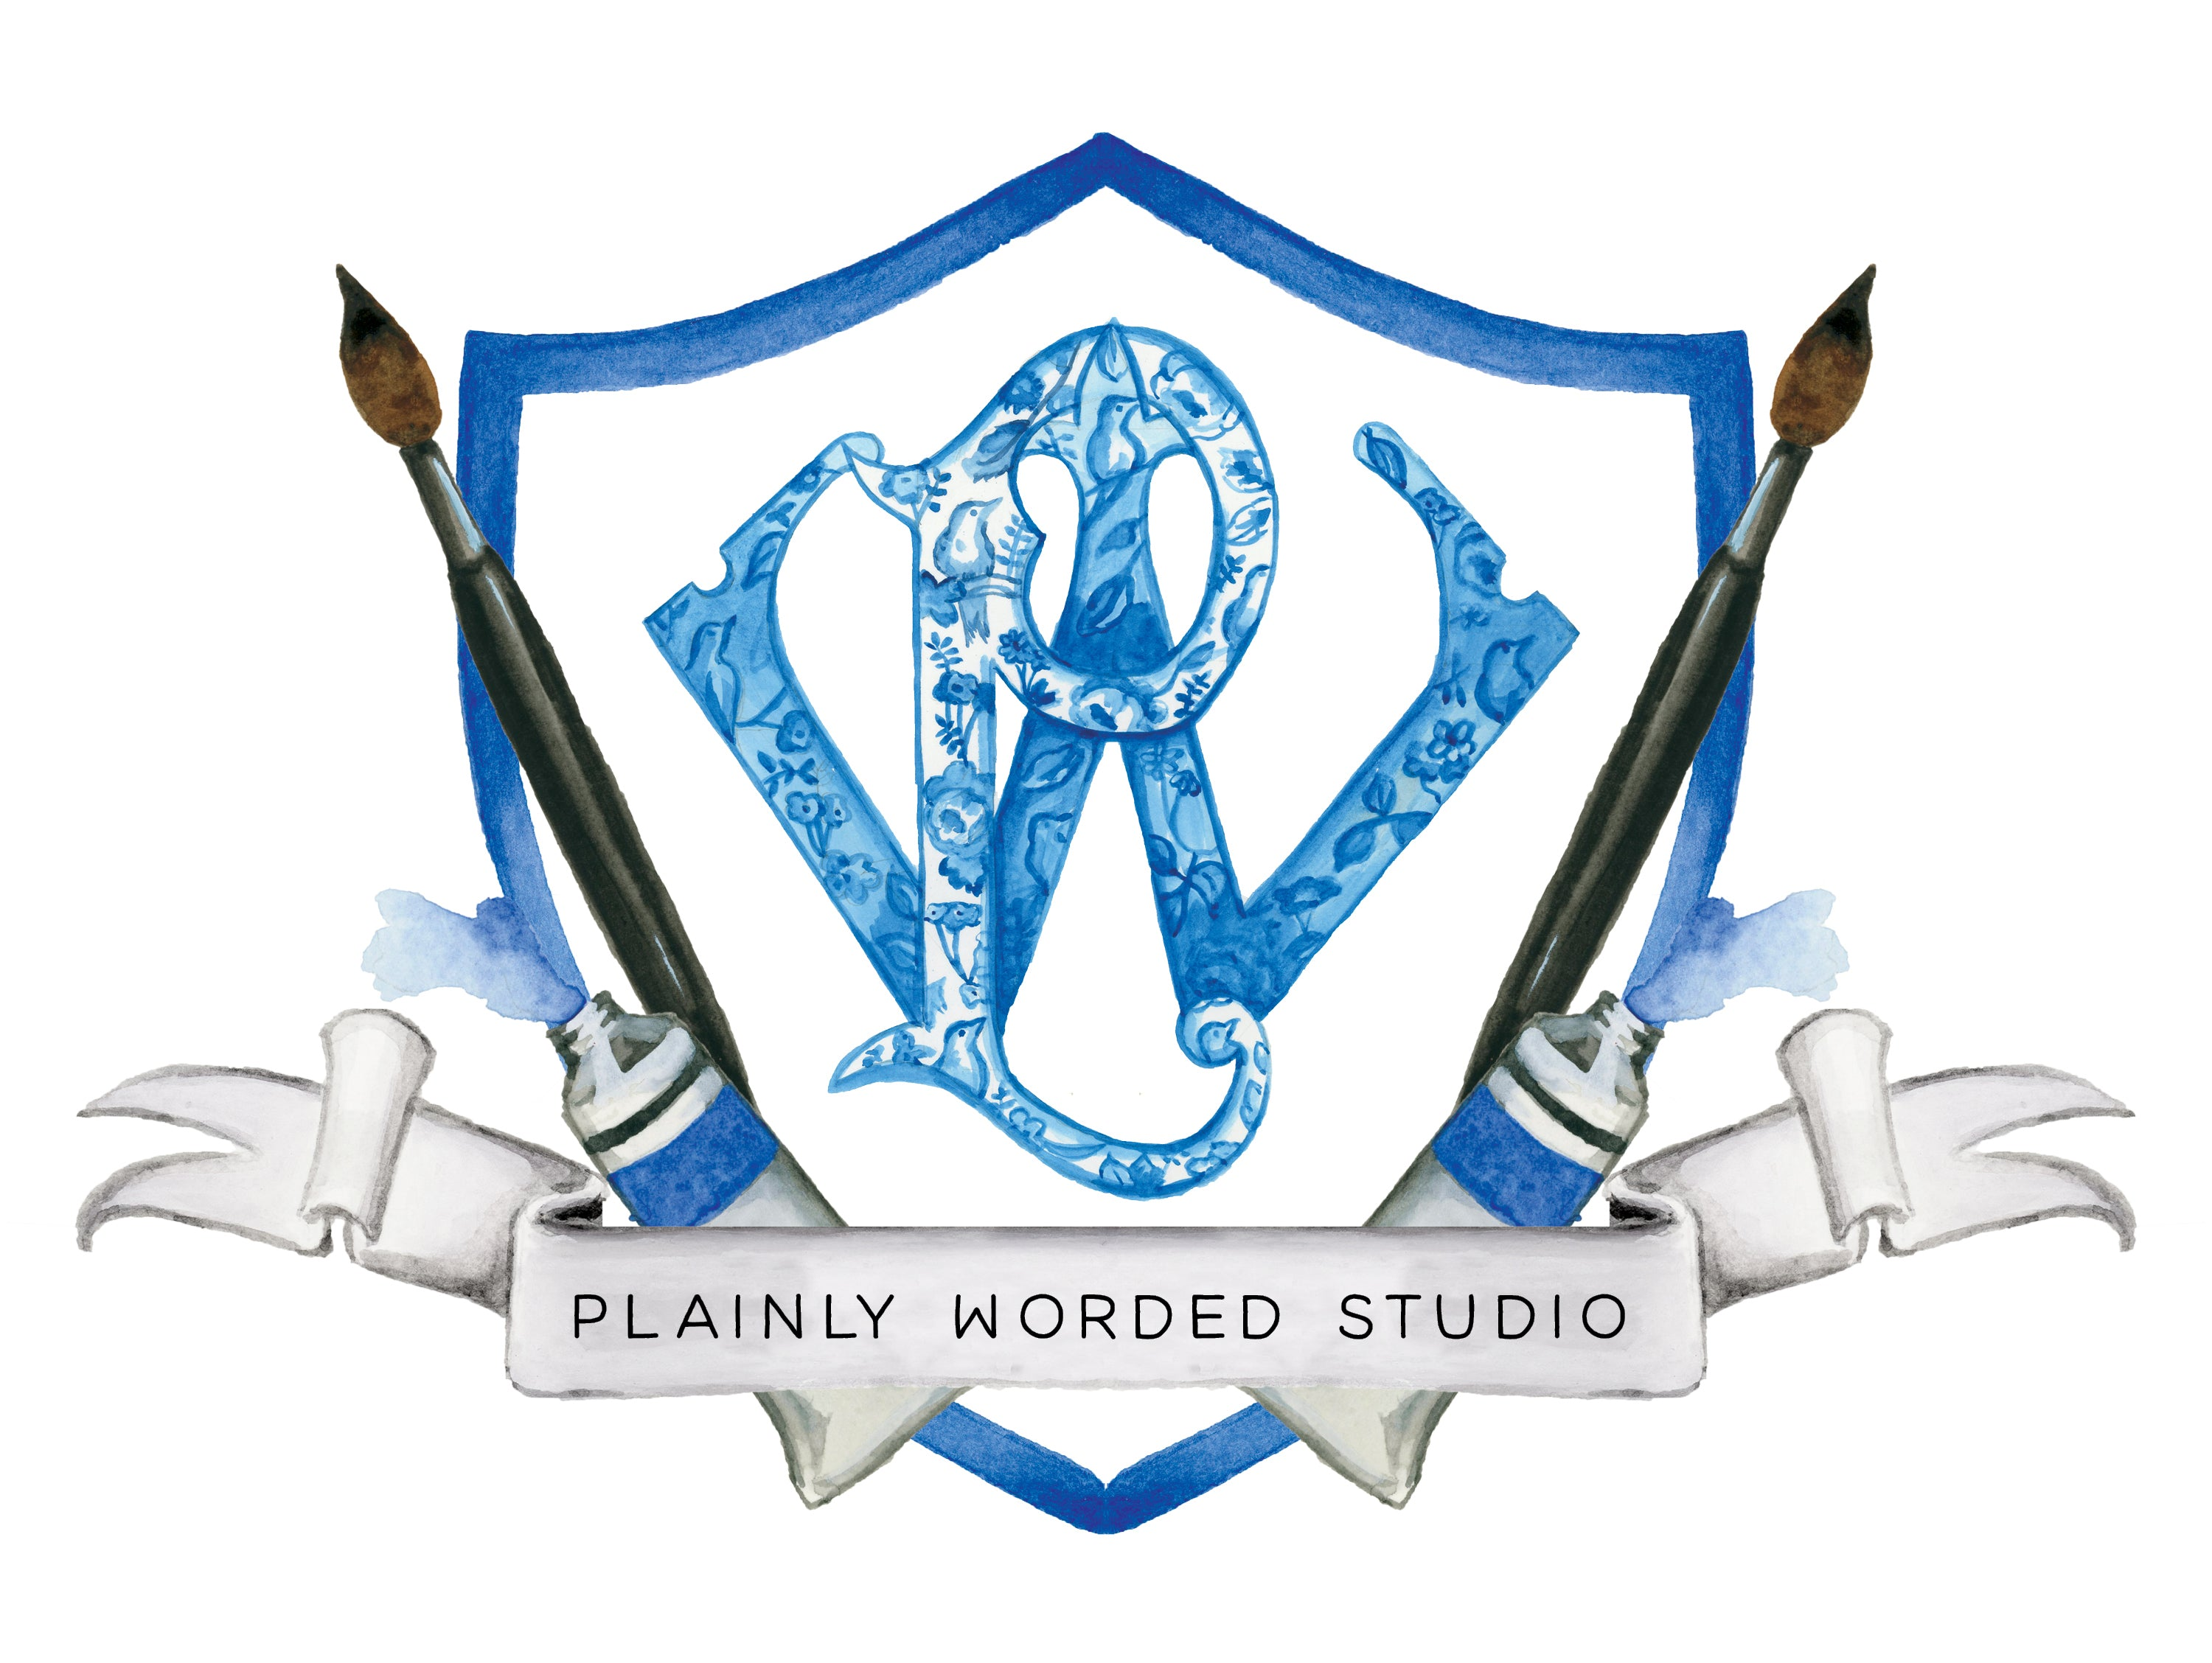 Plainly Worded Studio